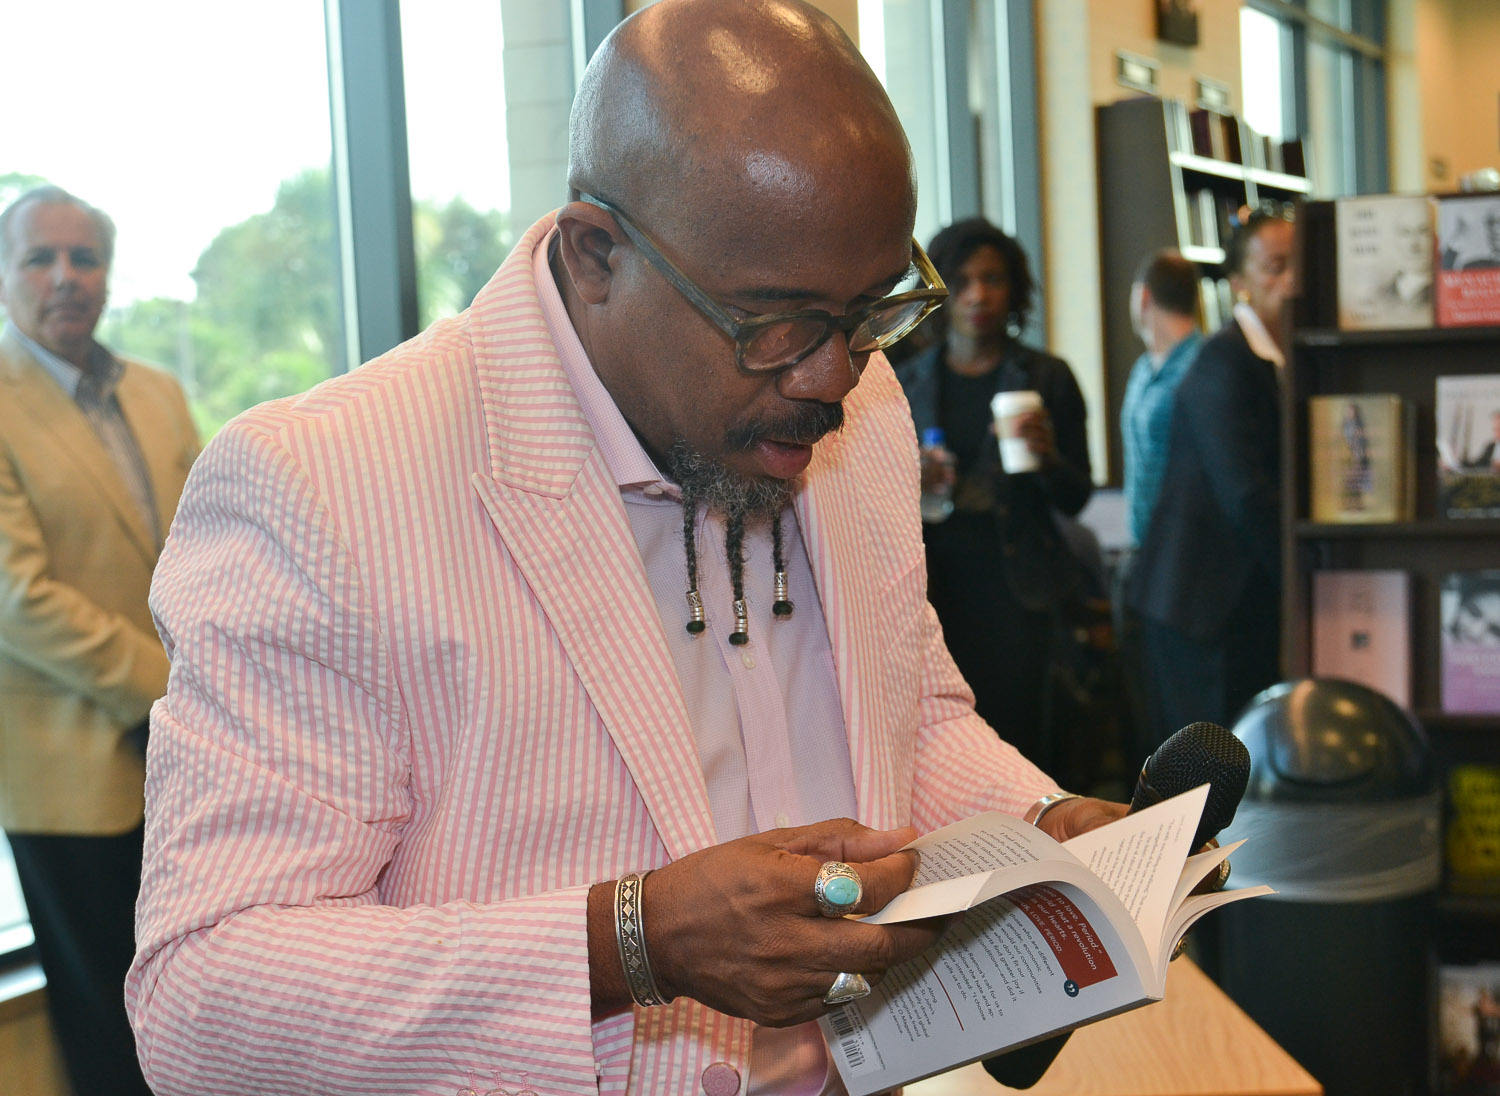 Paster Rudy book signing -0084.jpg